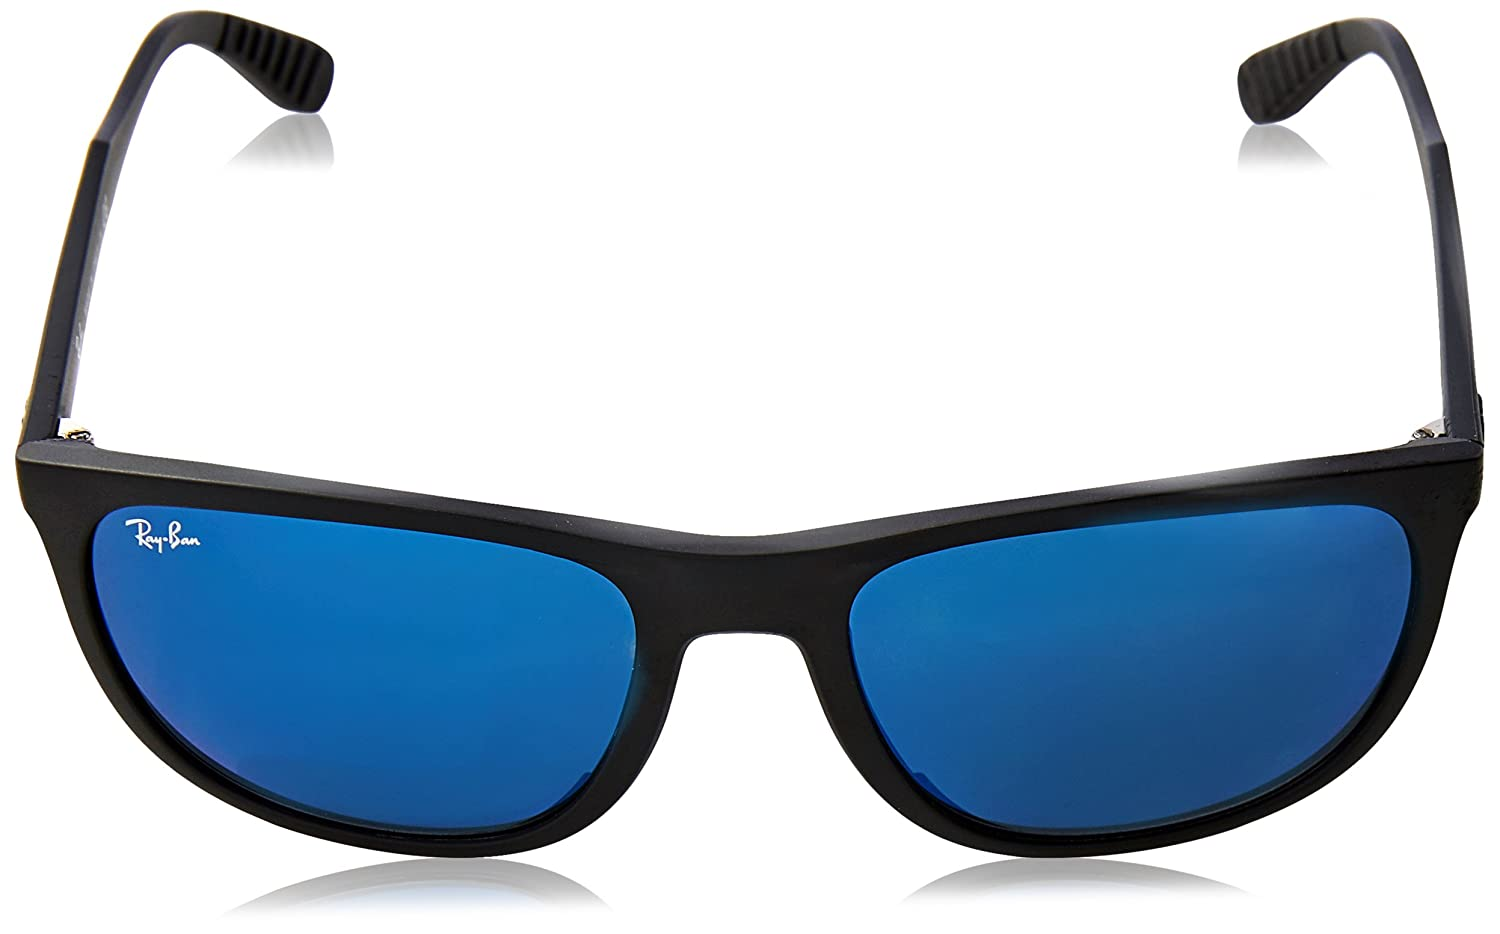 Ray-Ban Mens RB4291 Sunglasses